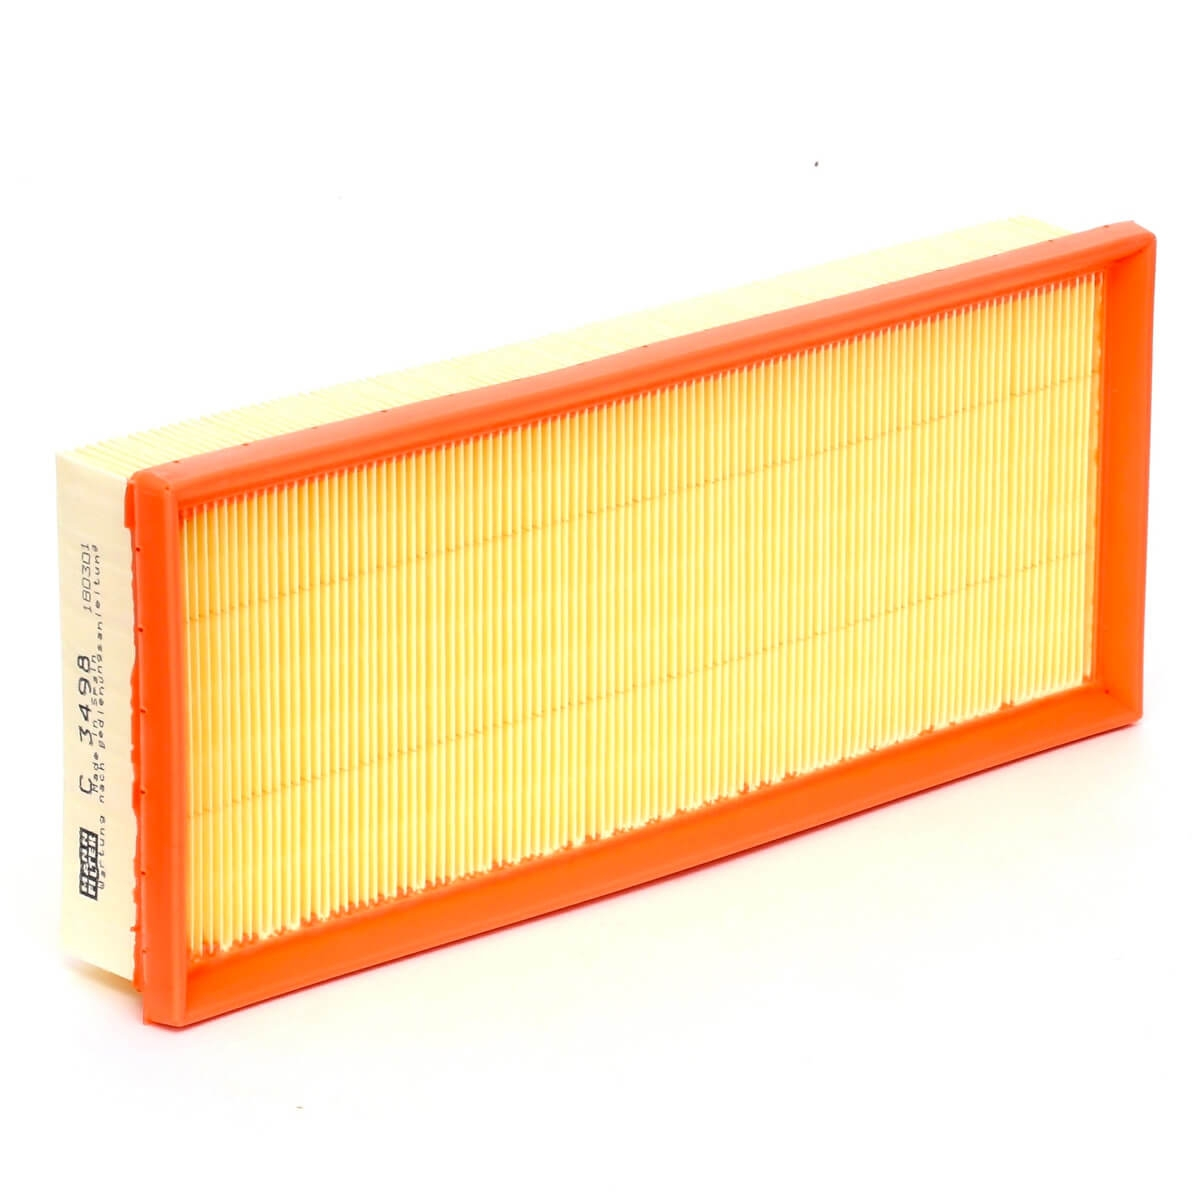 DAIHATSU CUORE Air Filter